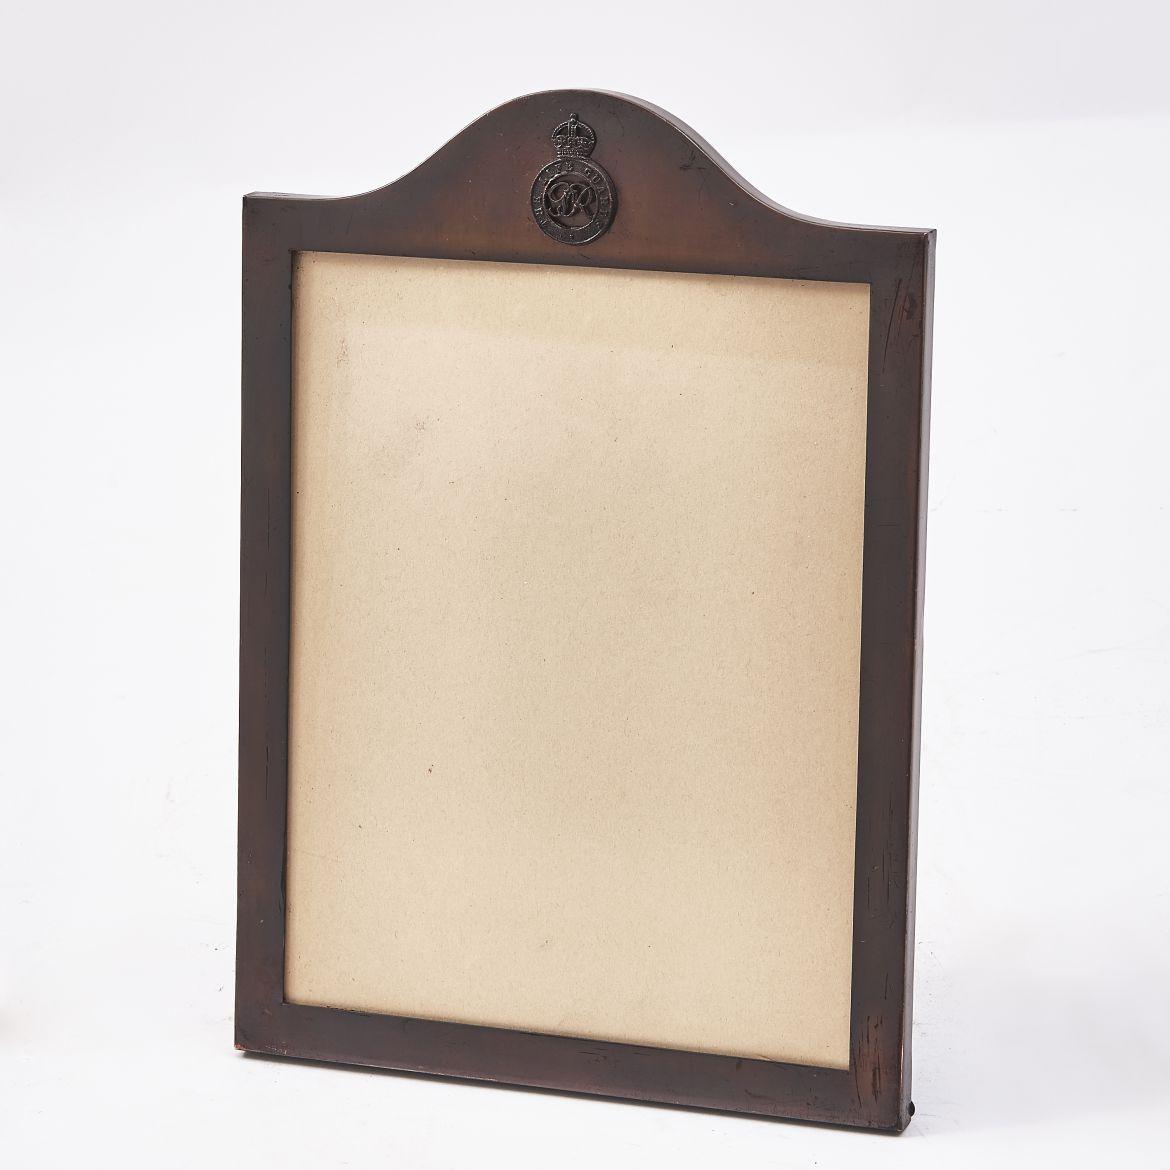 Patinated Copper Regimental Photo Frame